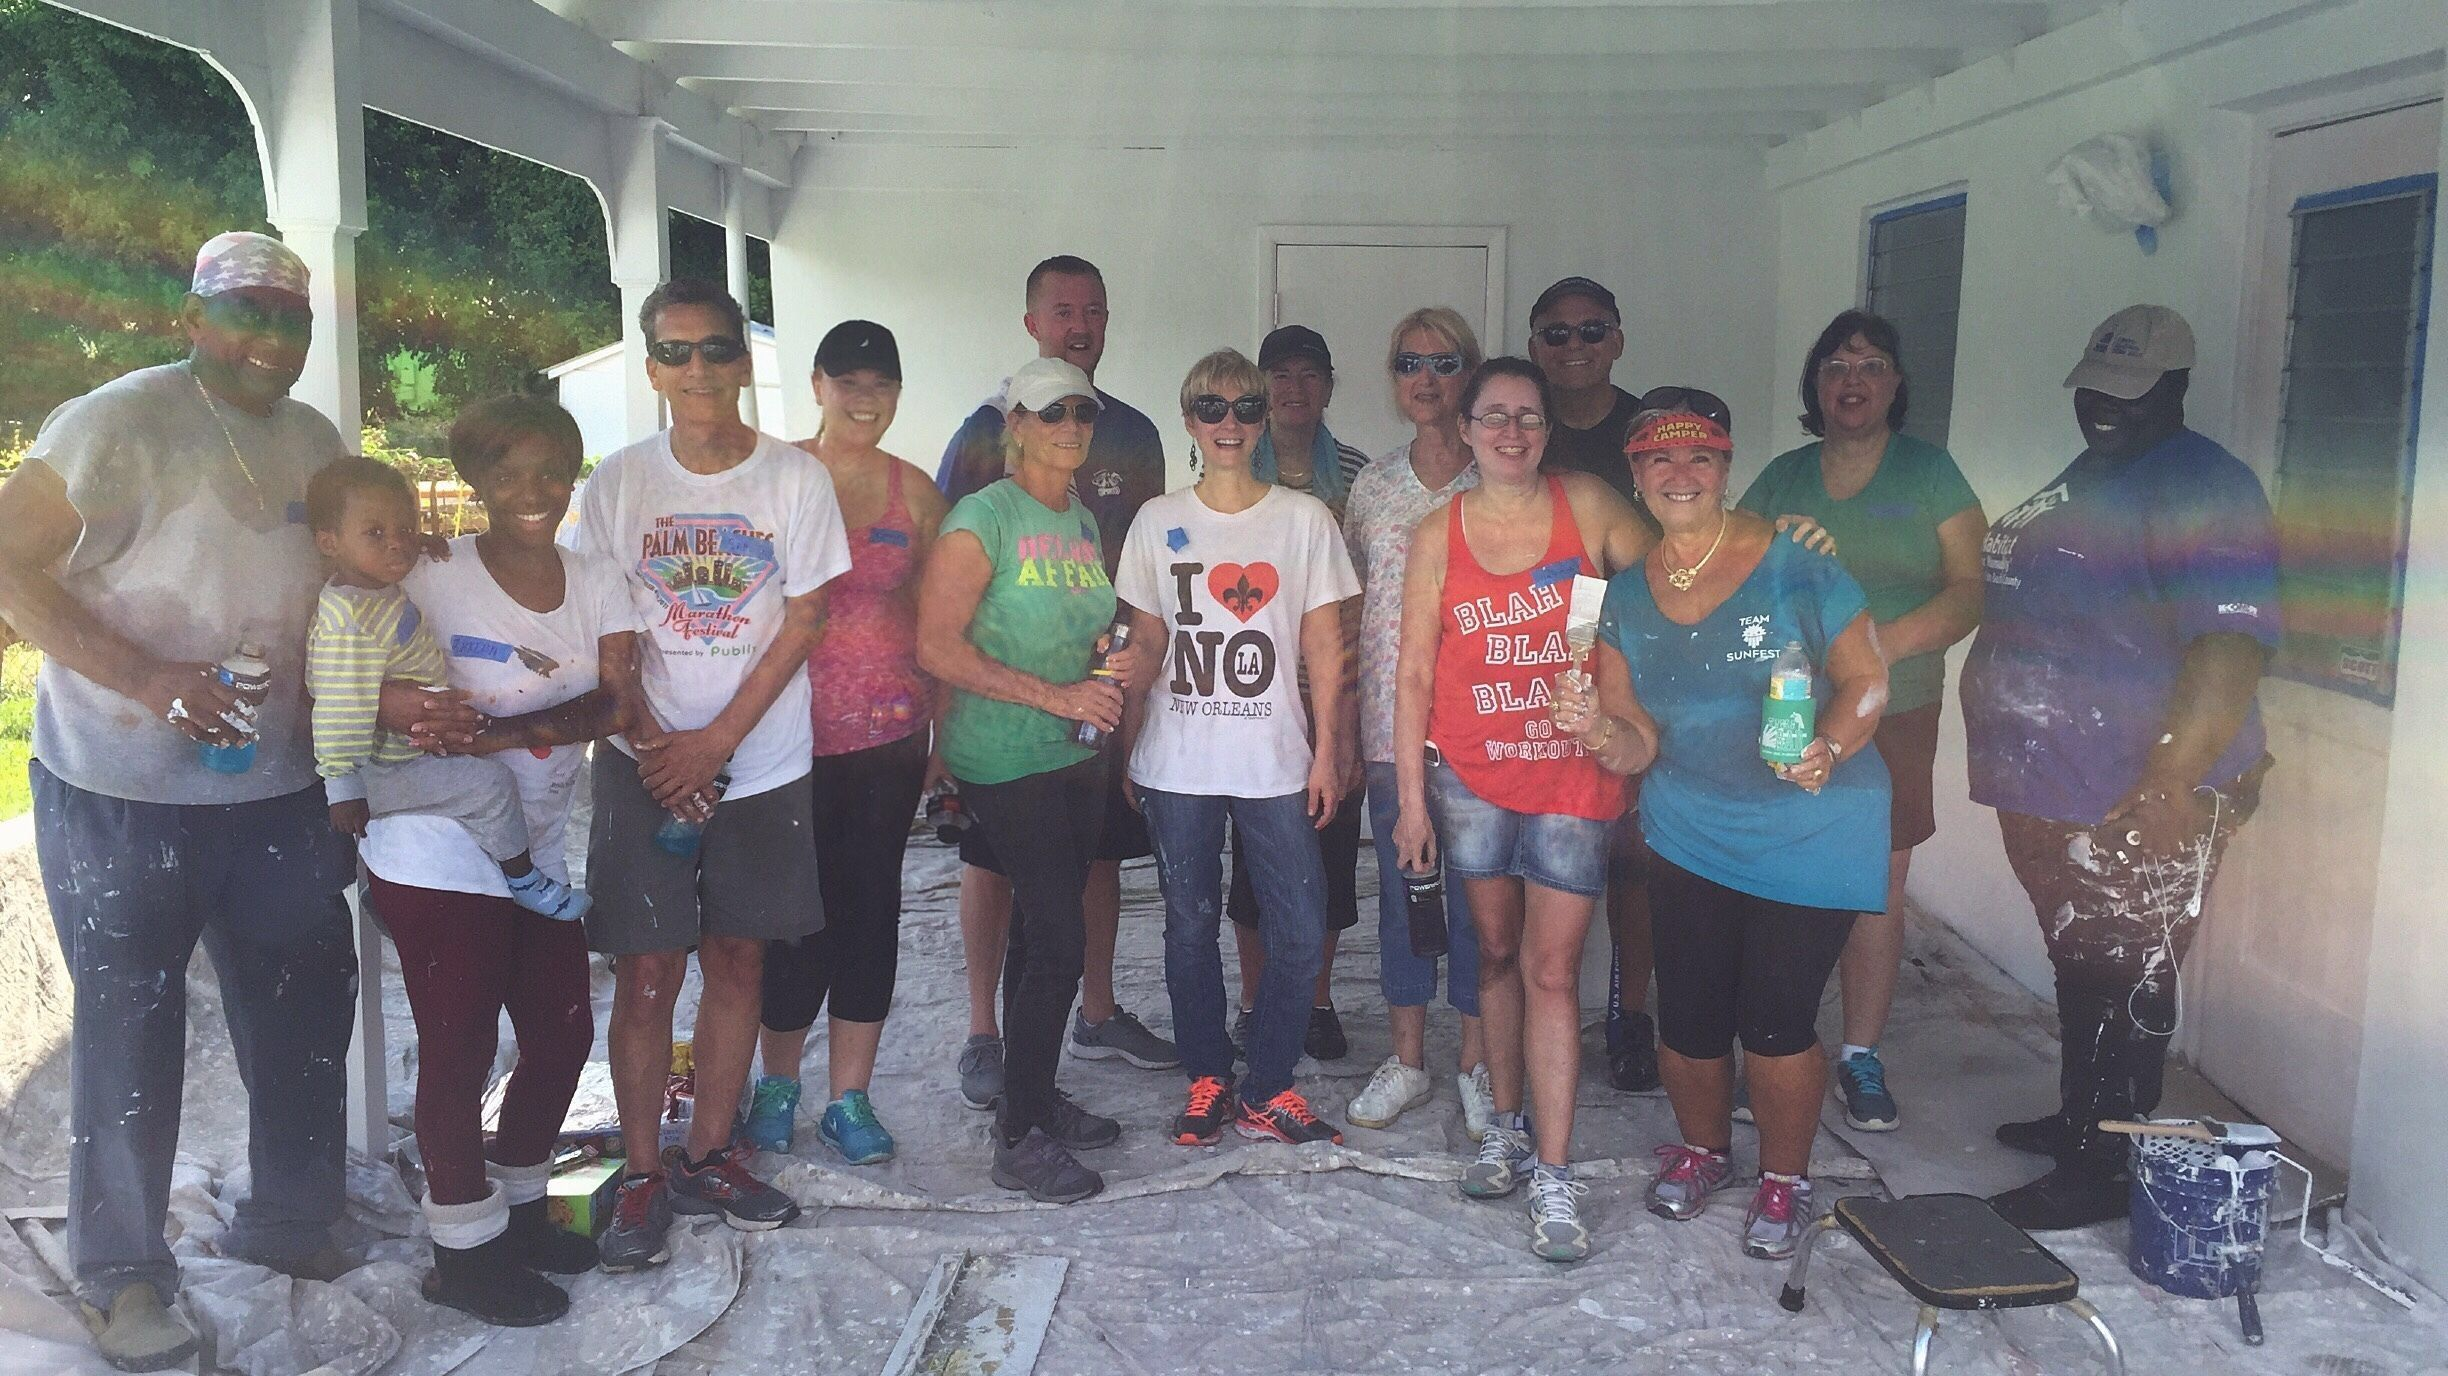 Volunteers of The Palm Beaches